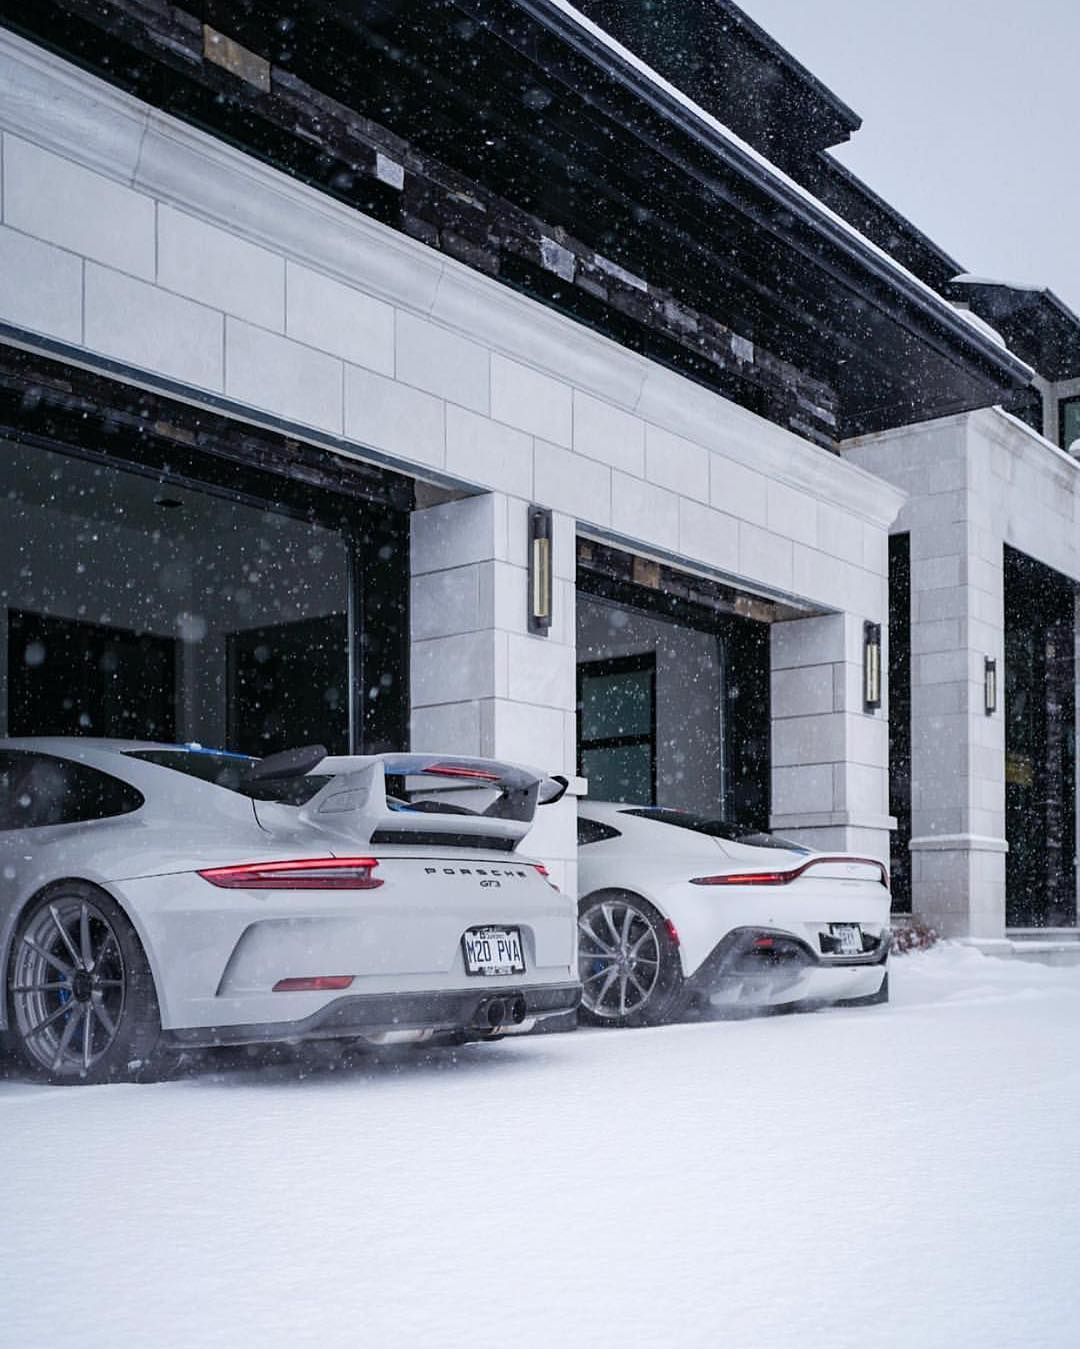 The Snow Battle Porsche Gt3 Vs Aston Martin Vantage Follow